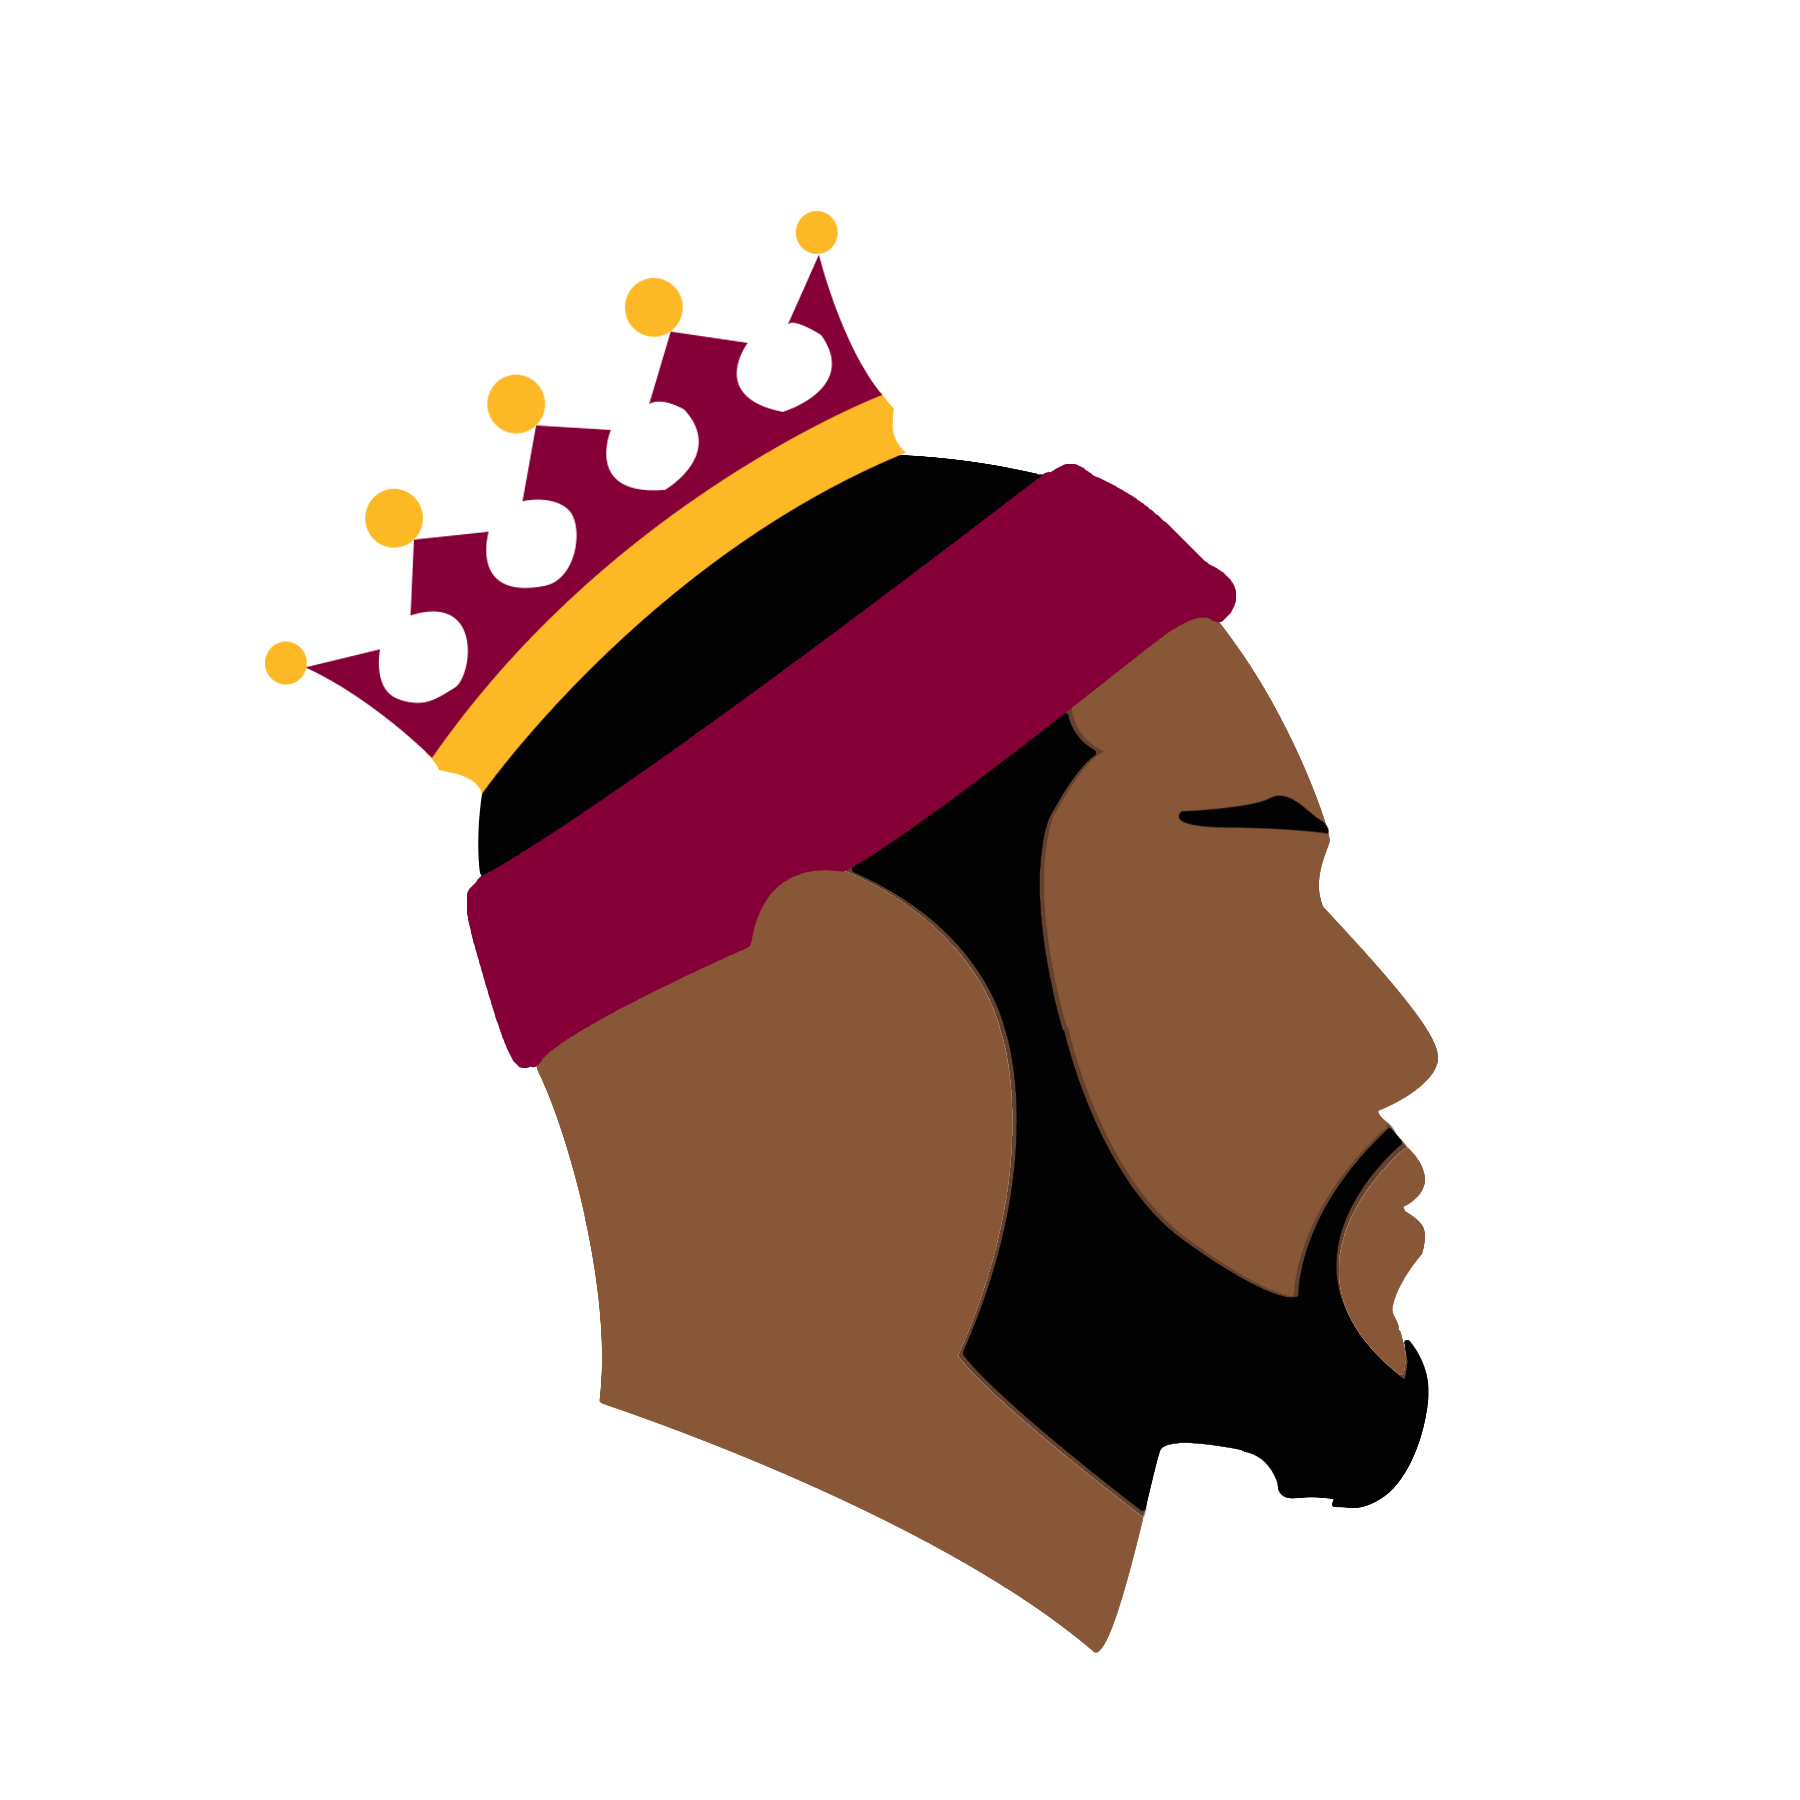 lebron james silhouette at getdrawings com free for personal use